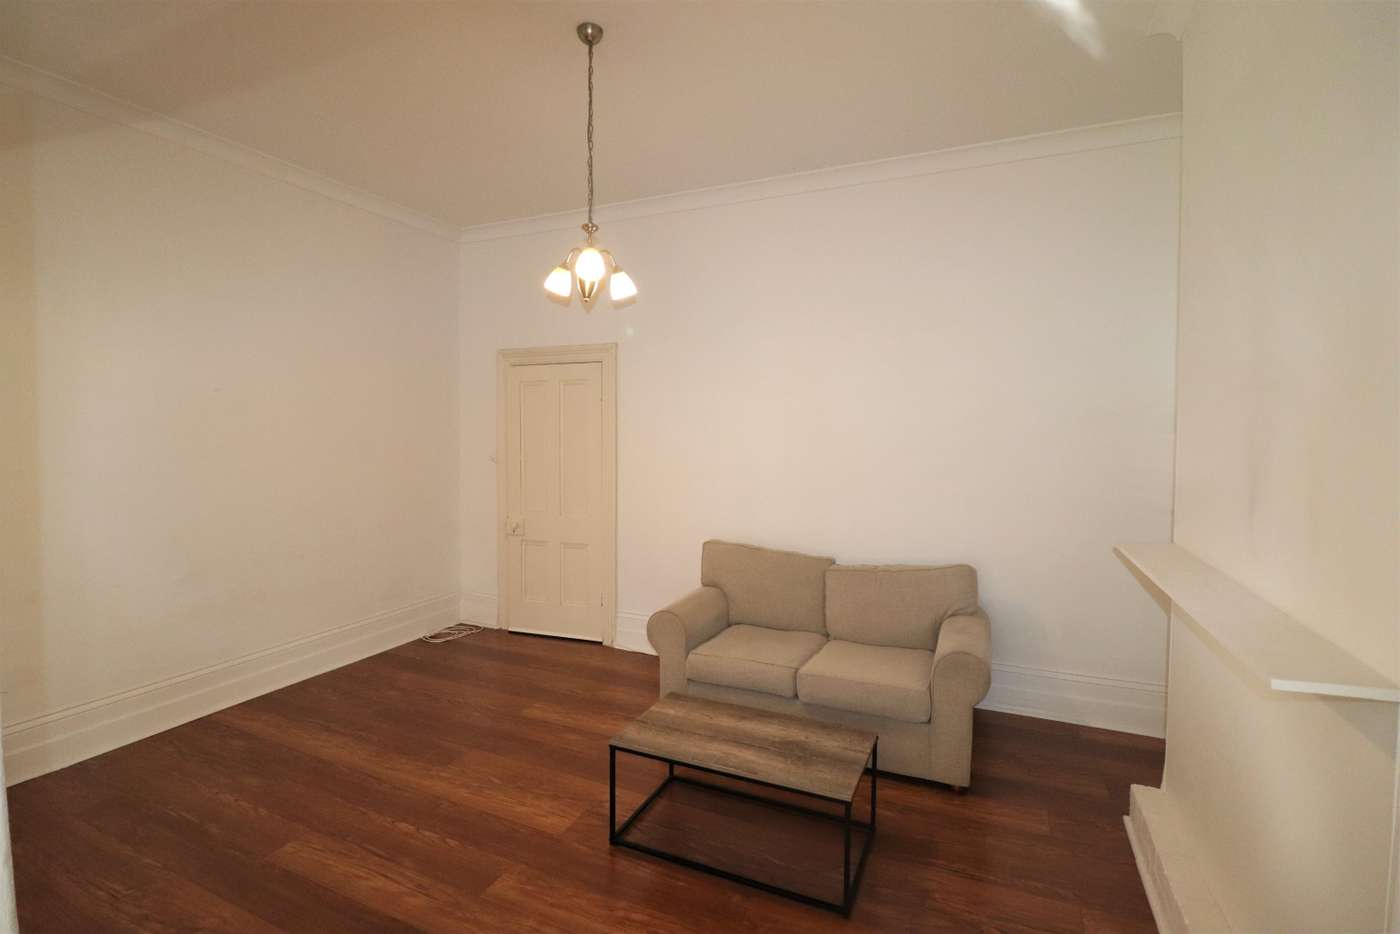 Main view of Homely apartment listing, 2/6-8 Botany Street, Bondi Junction NSW 2022